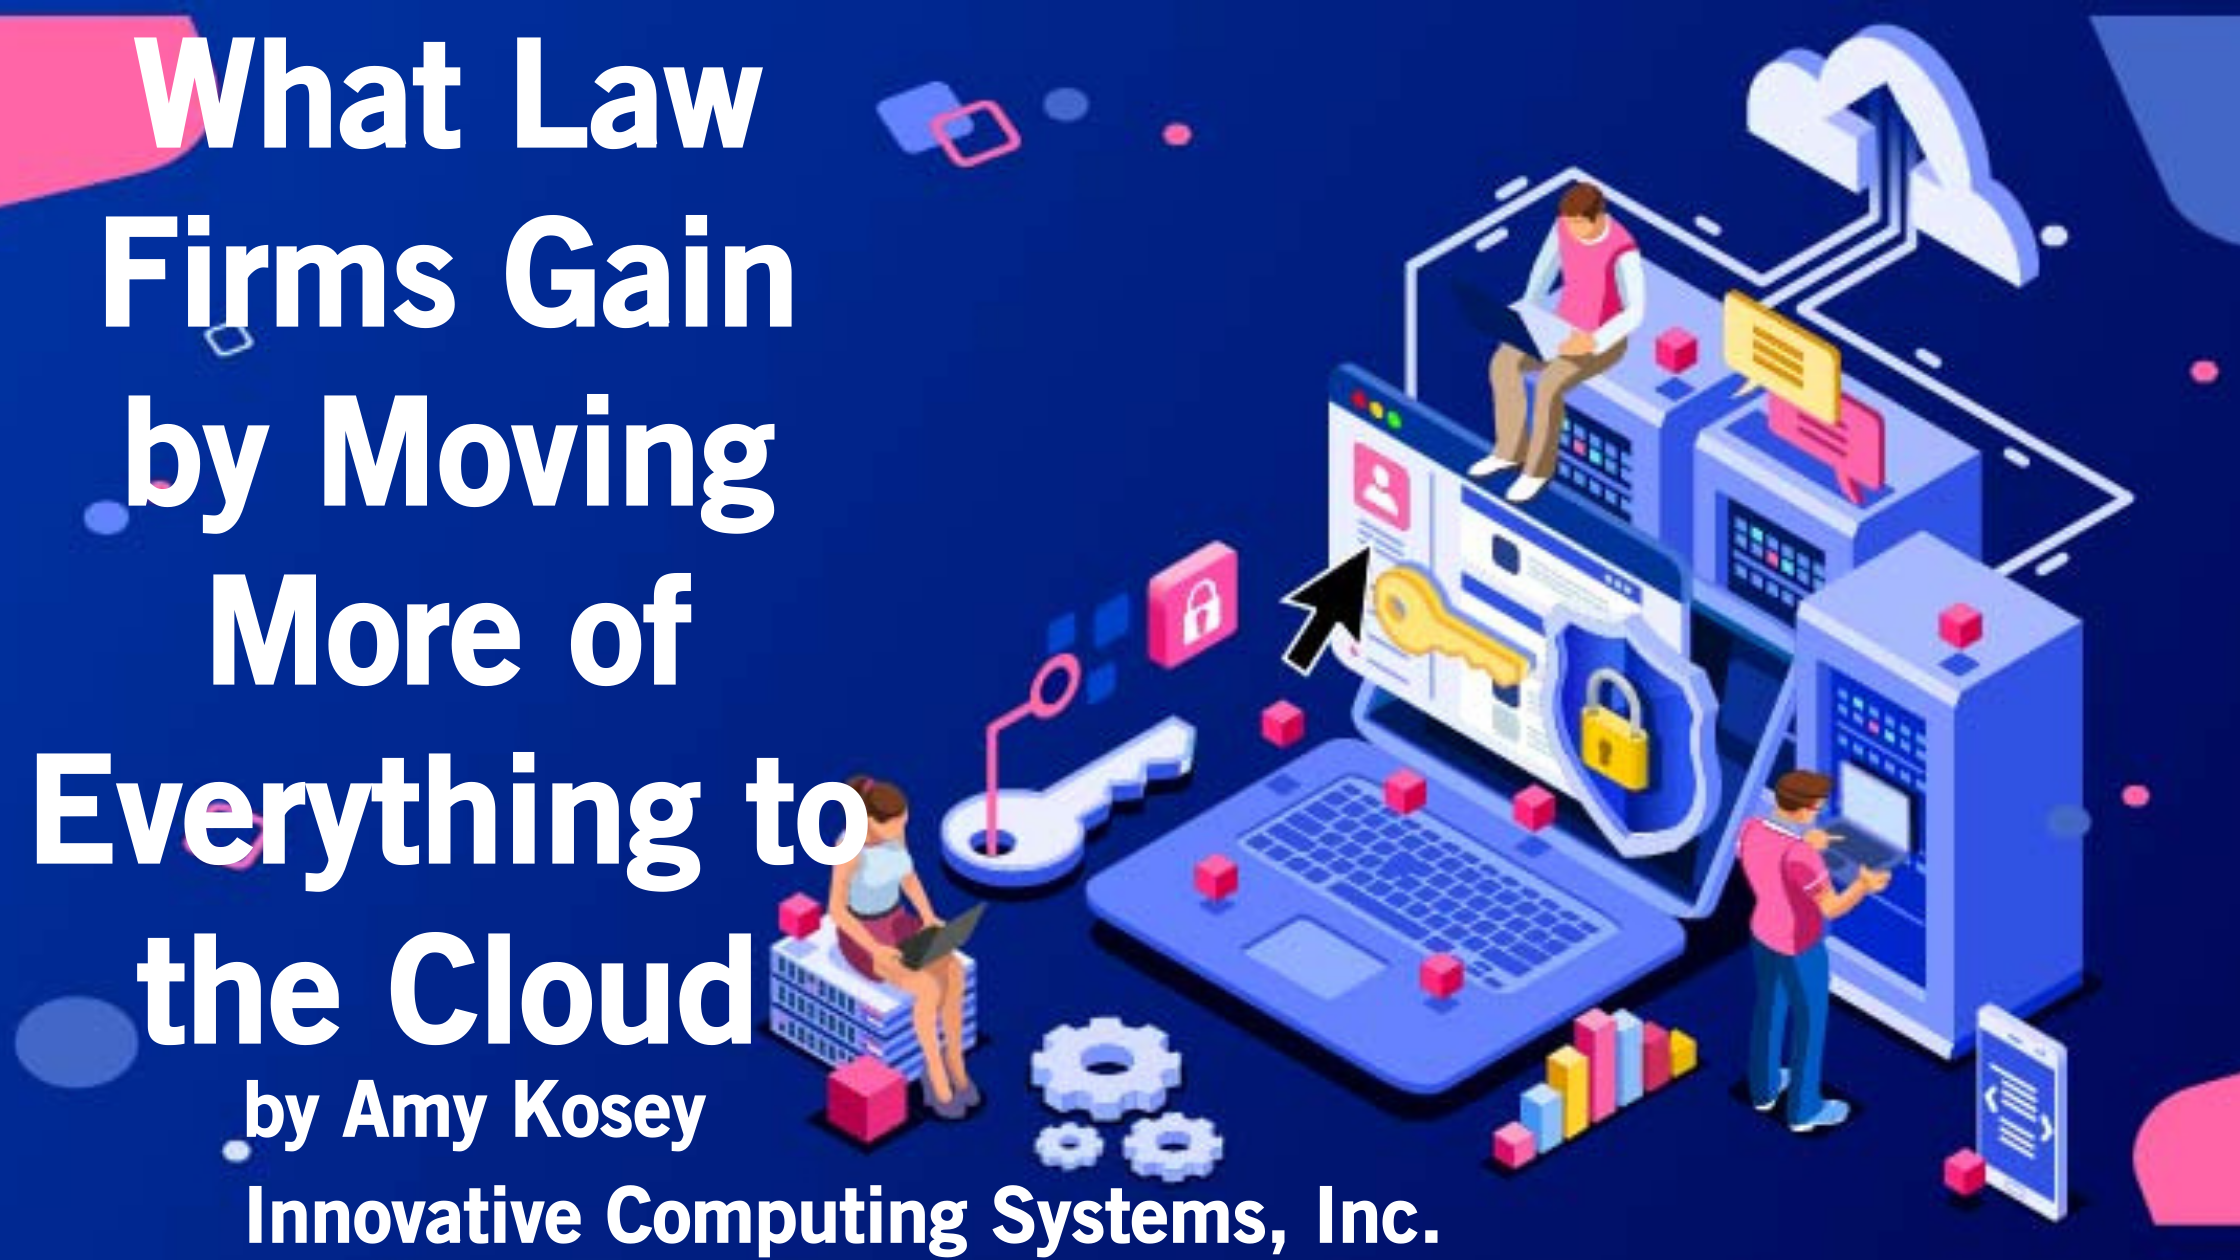 What Law Firms Gain by Moving More of Everything to the Cloud